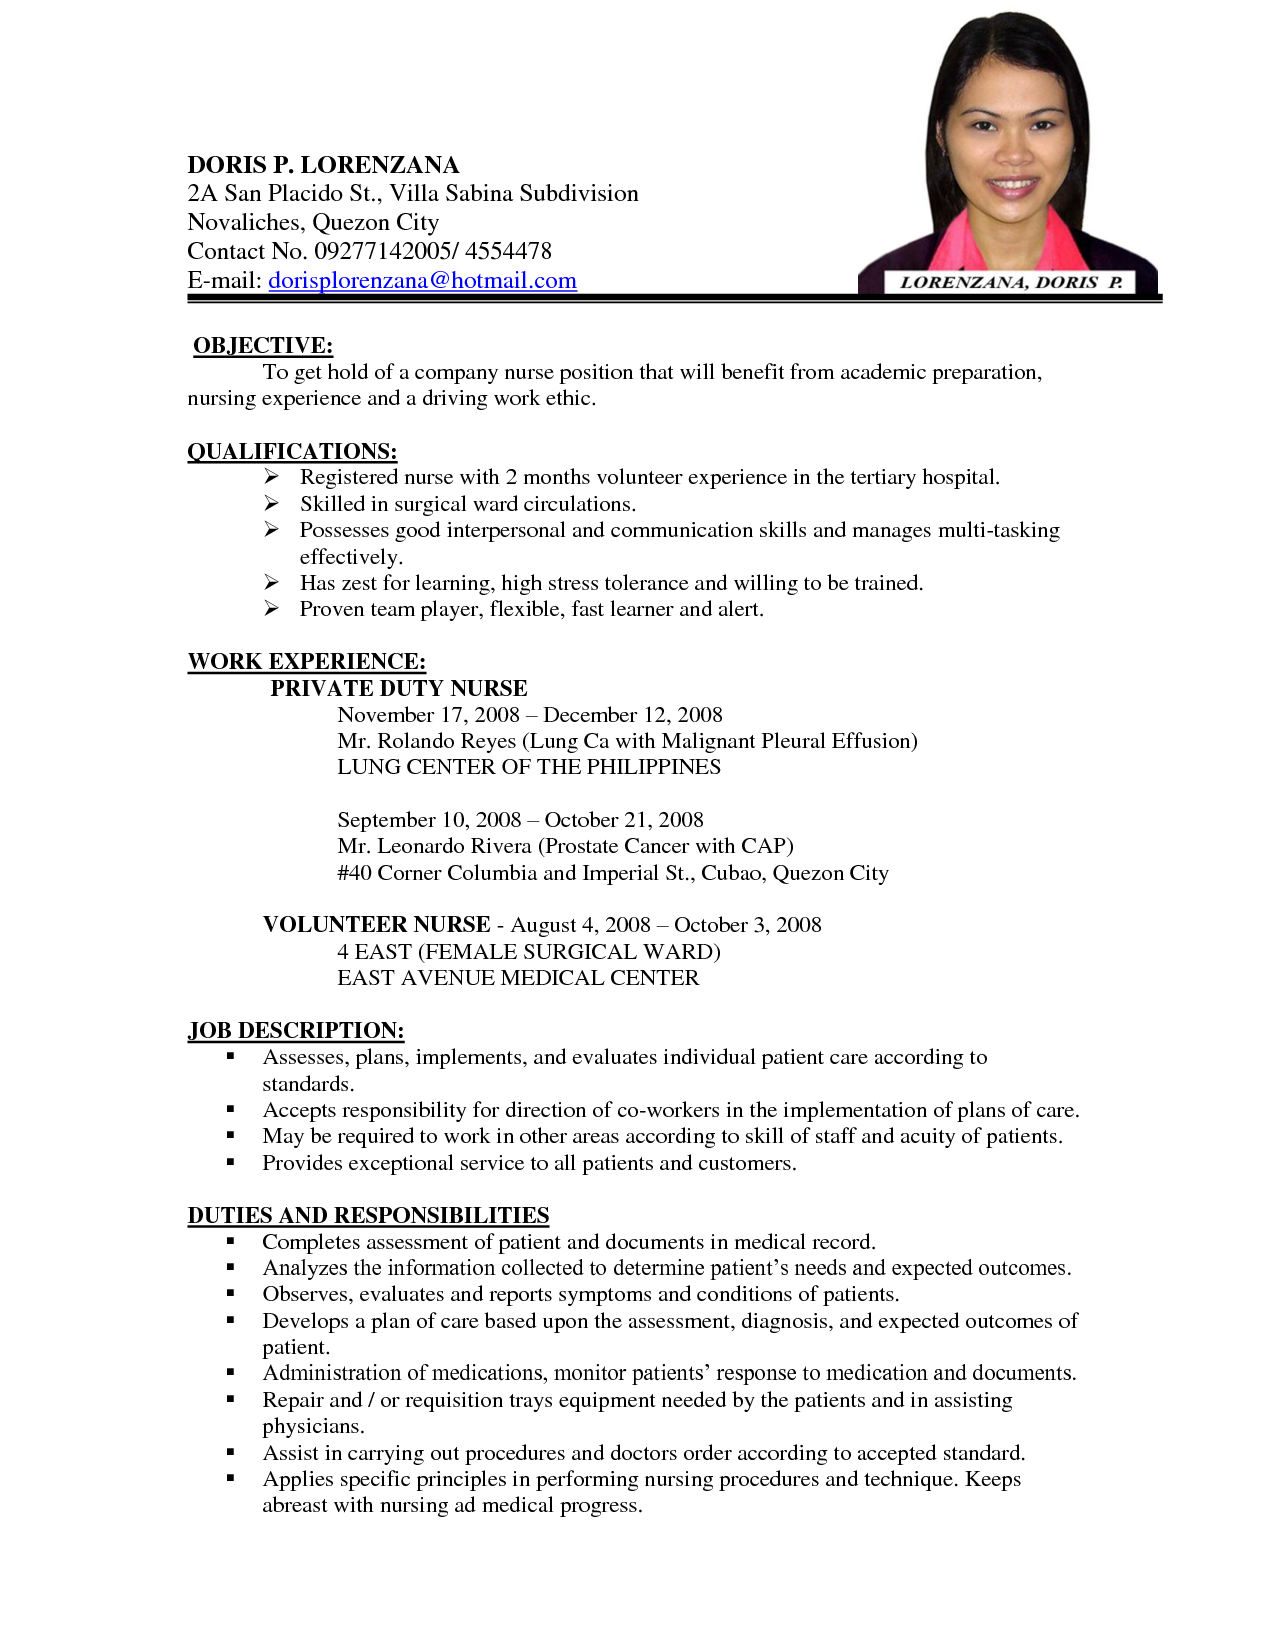 Examples Of Cv And Resume Nursing Curriculum Vitae Examples Google Search